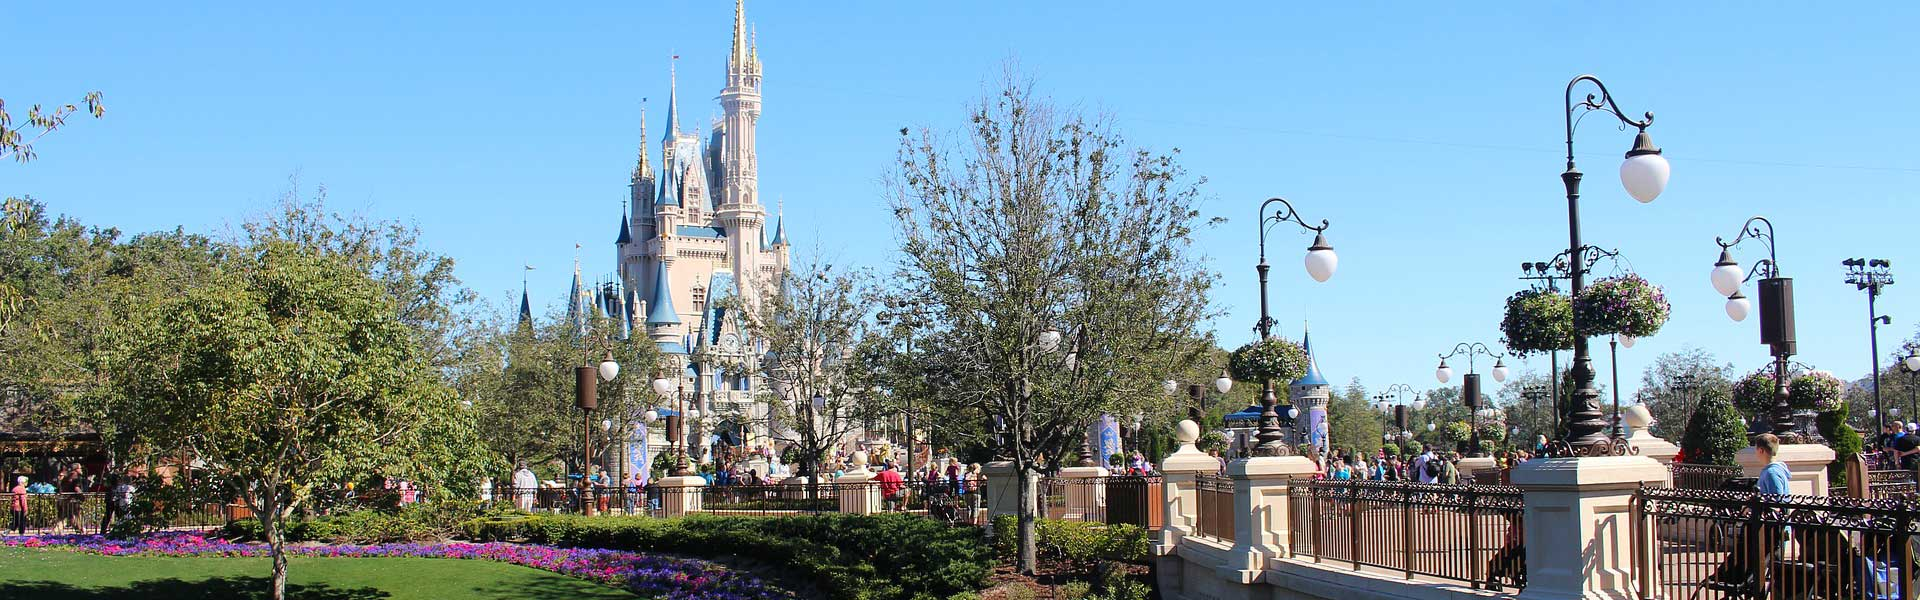 Shows Magic Kingdom castle - Orlando 2 week itinerary ideas